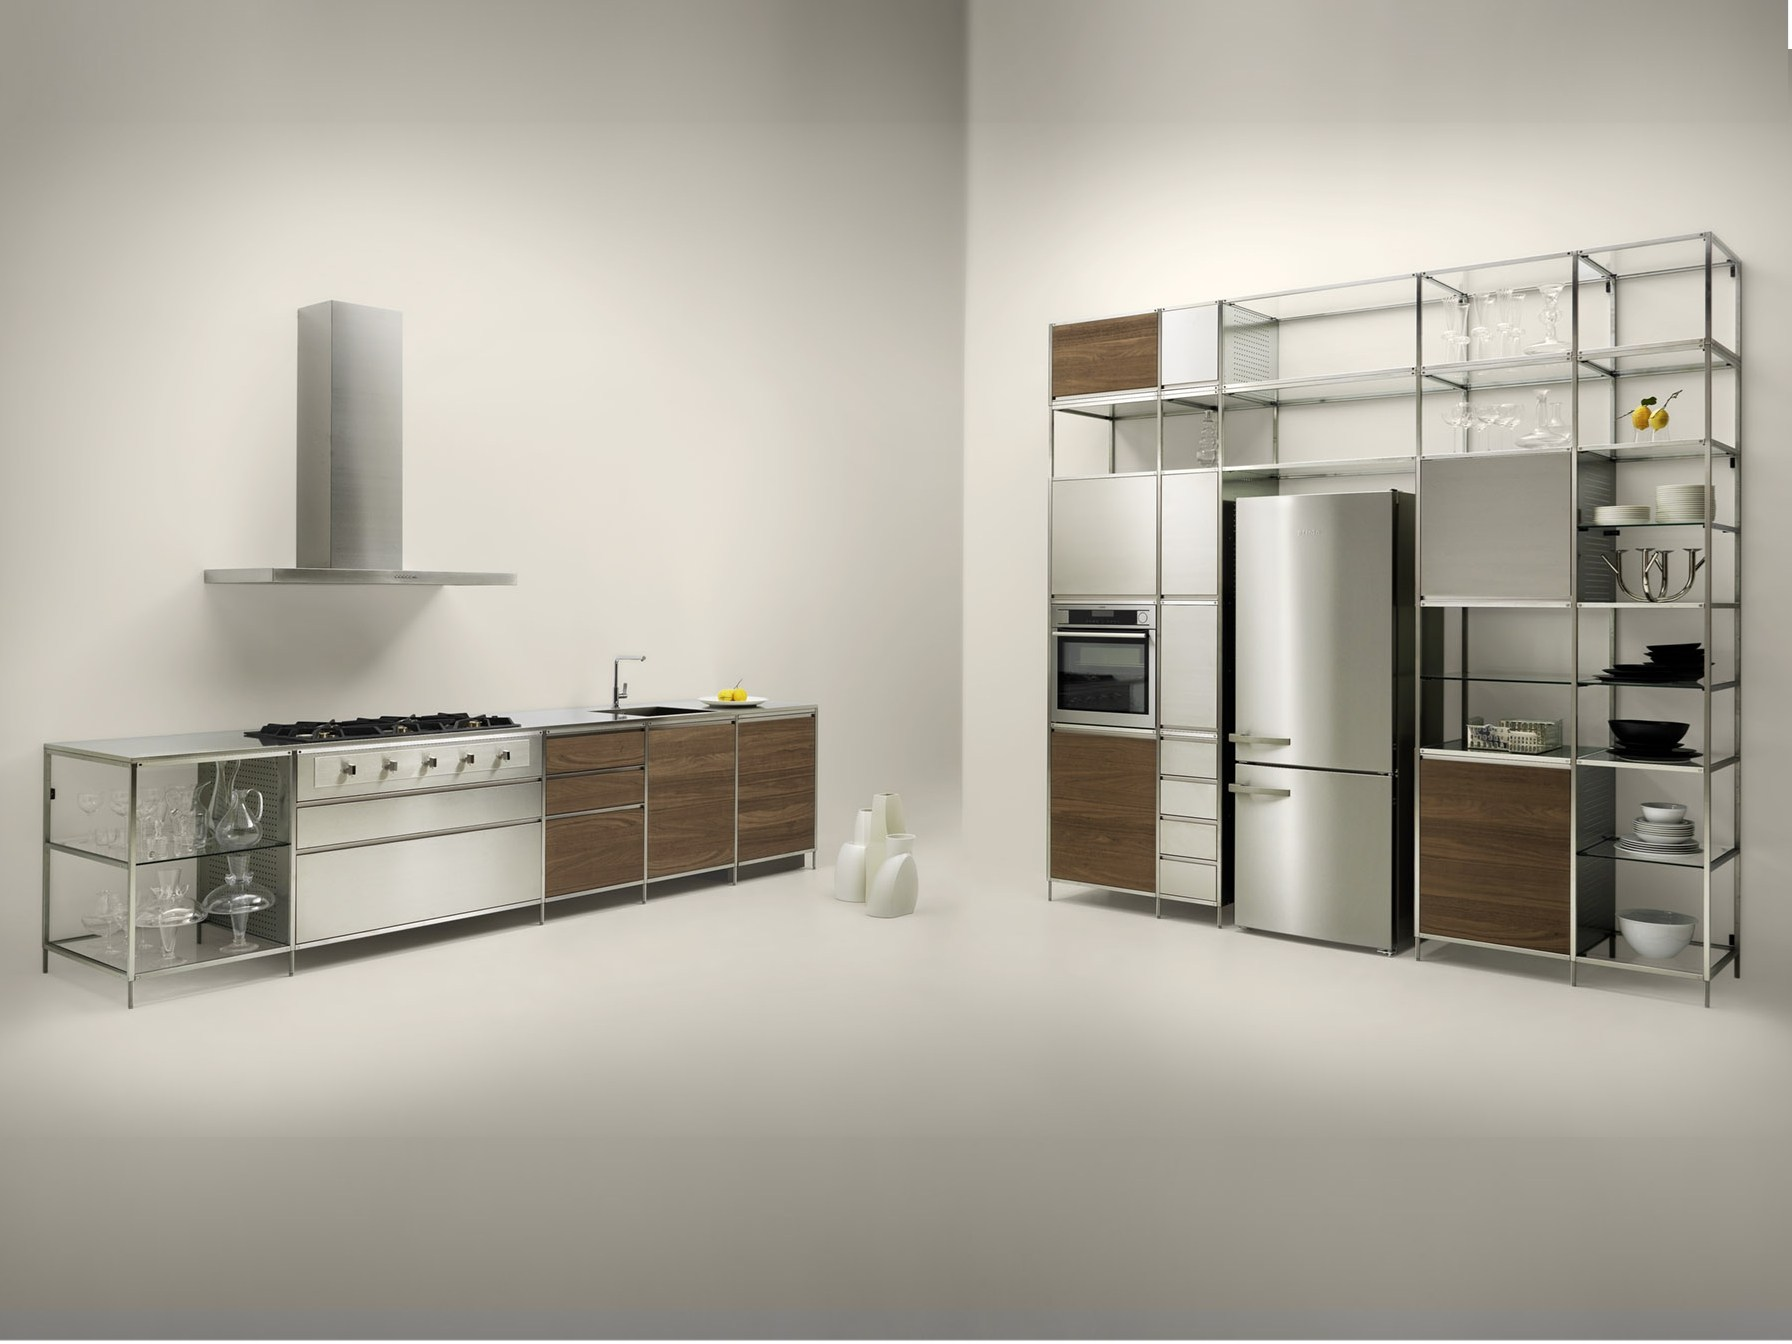 Metal kitchen meccanica by valcucine design gabriele centazzo for Valcucine prezzi